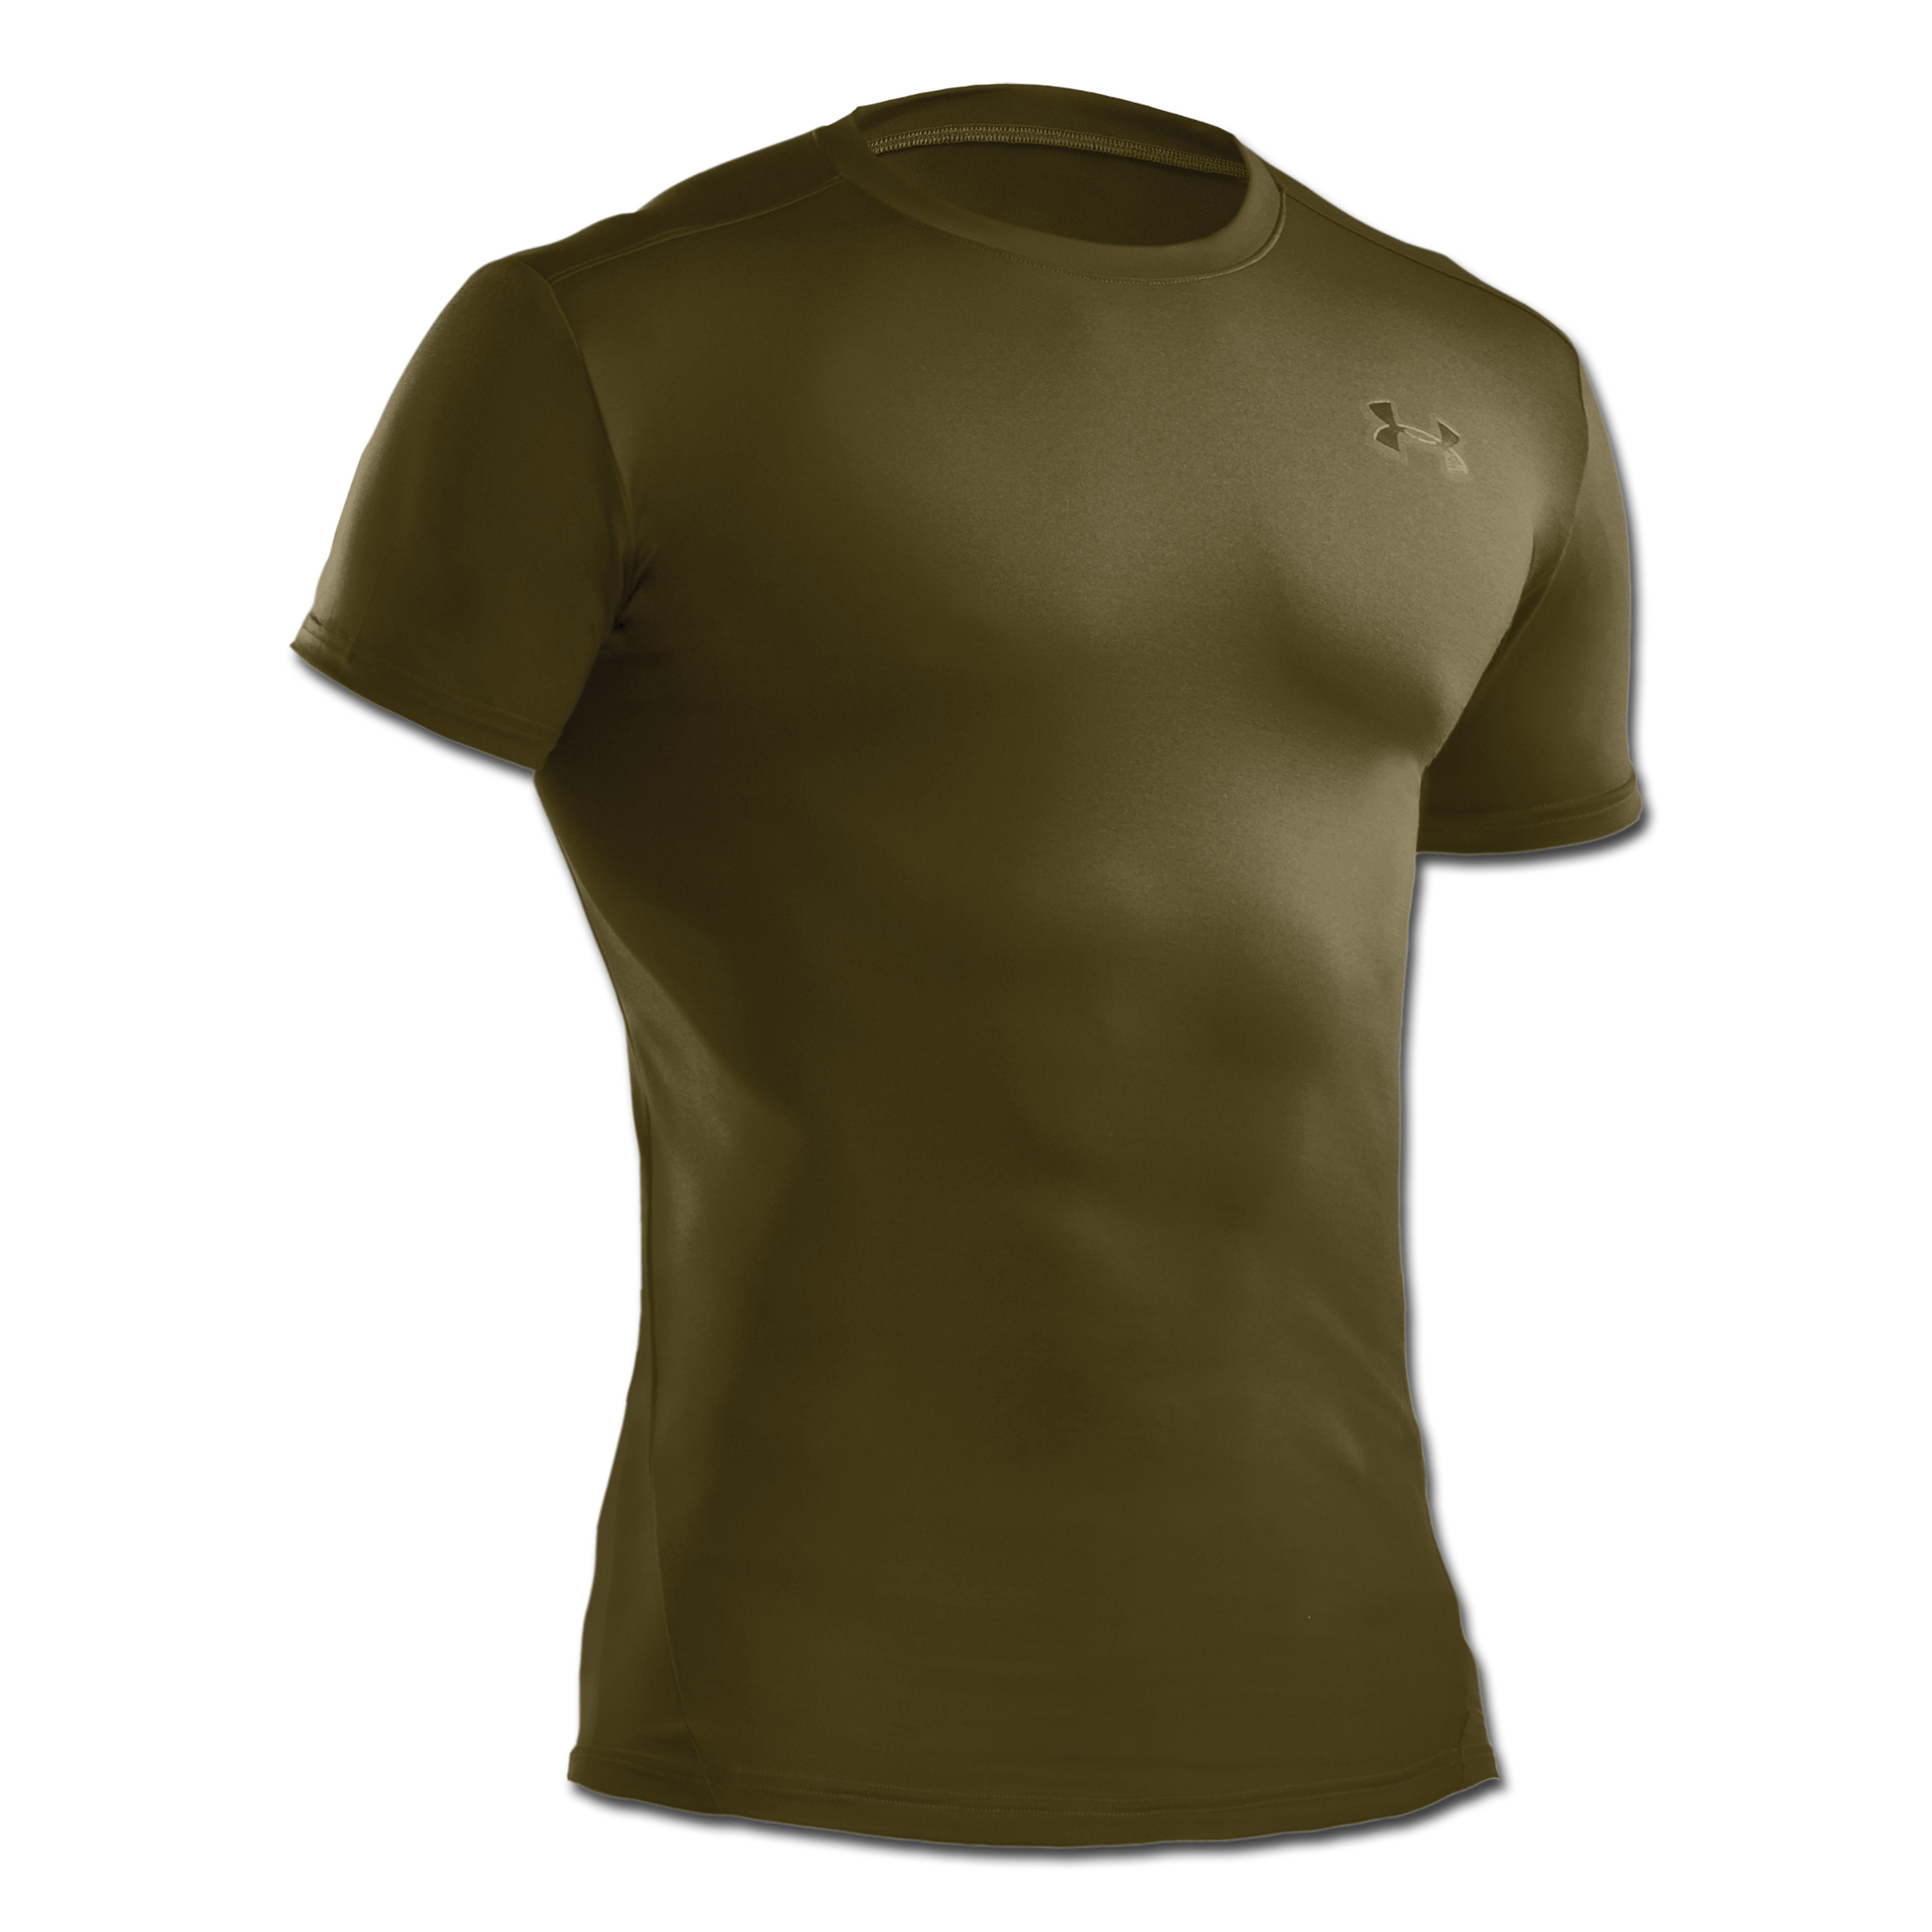 Under Under D'entra Armour Combinaison Armour Combinaison D'entra nement nement Under Armour Combinaison YEeD9WH2I